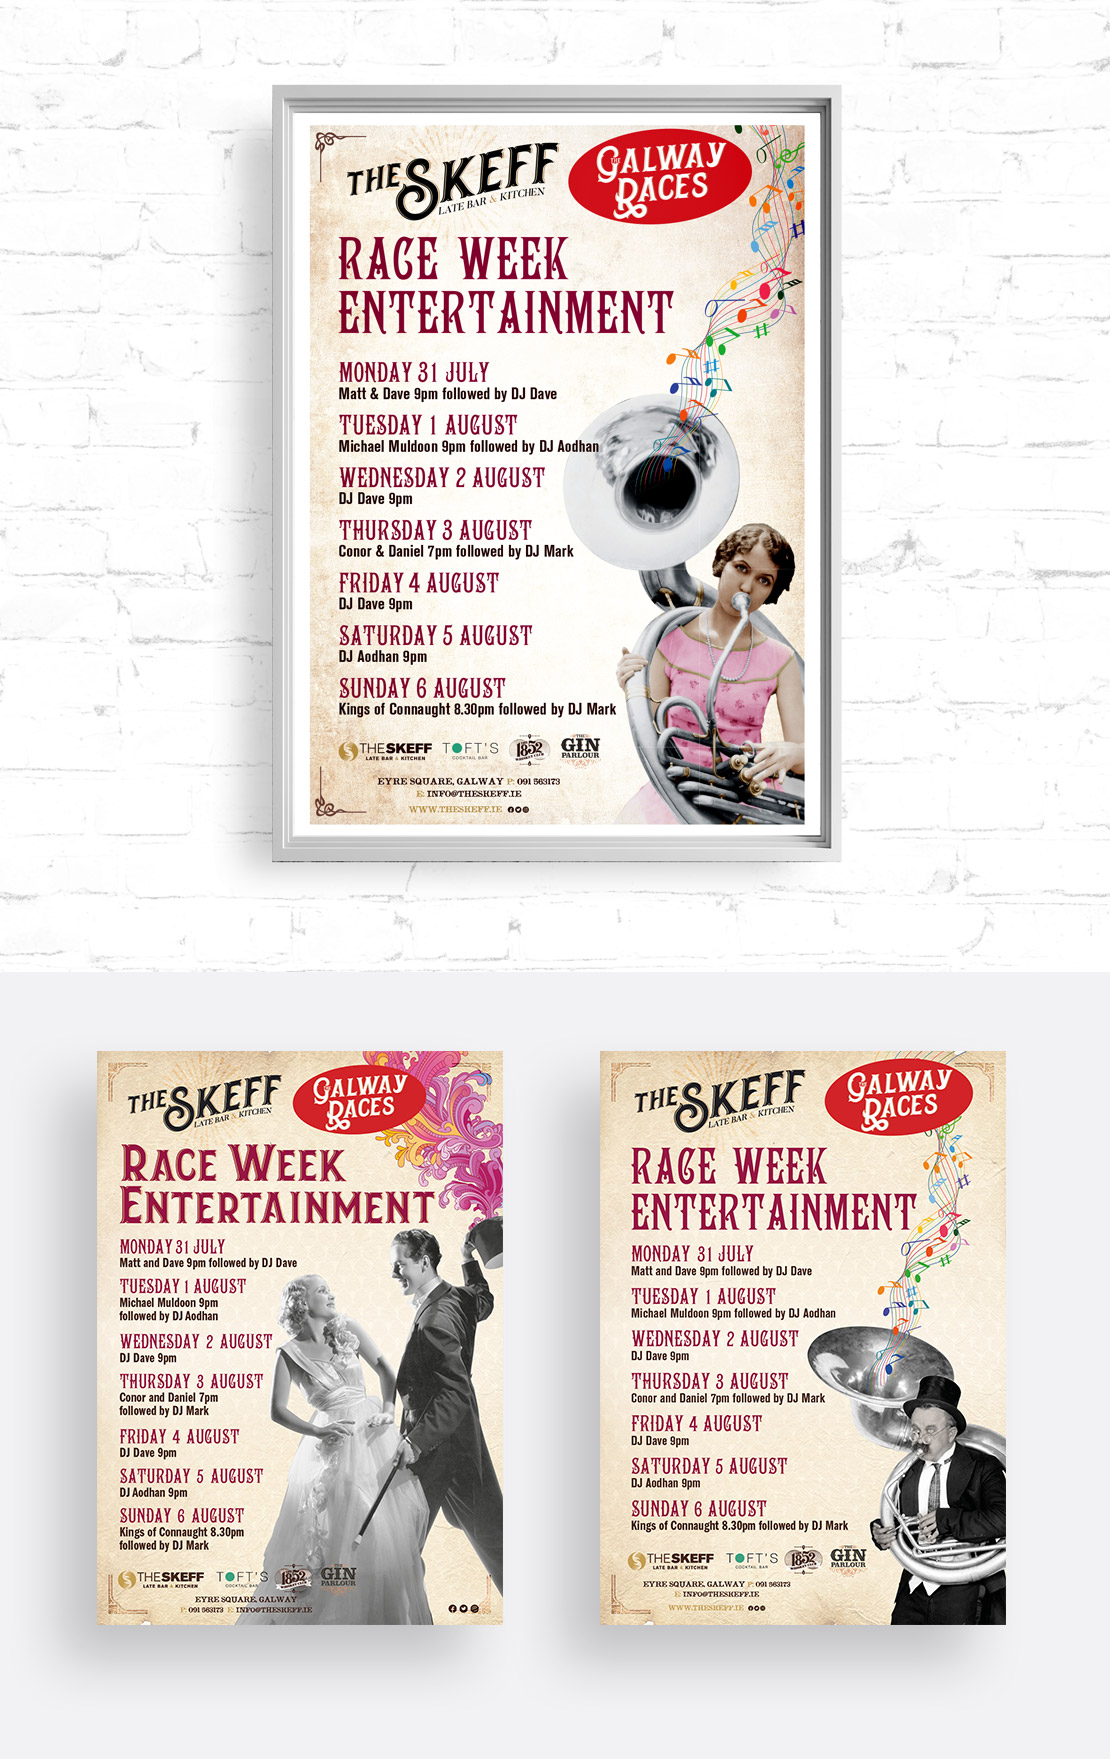 The Skeff 2017 Raceweek promotional campaign posters